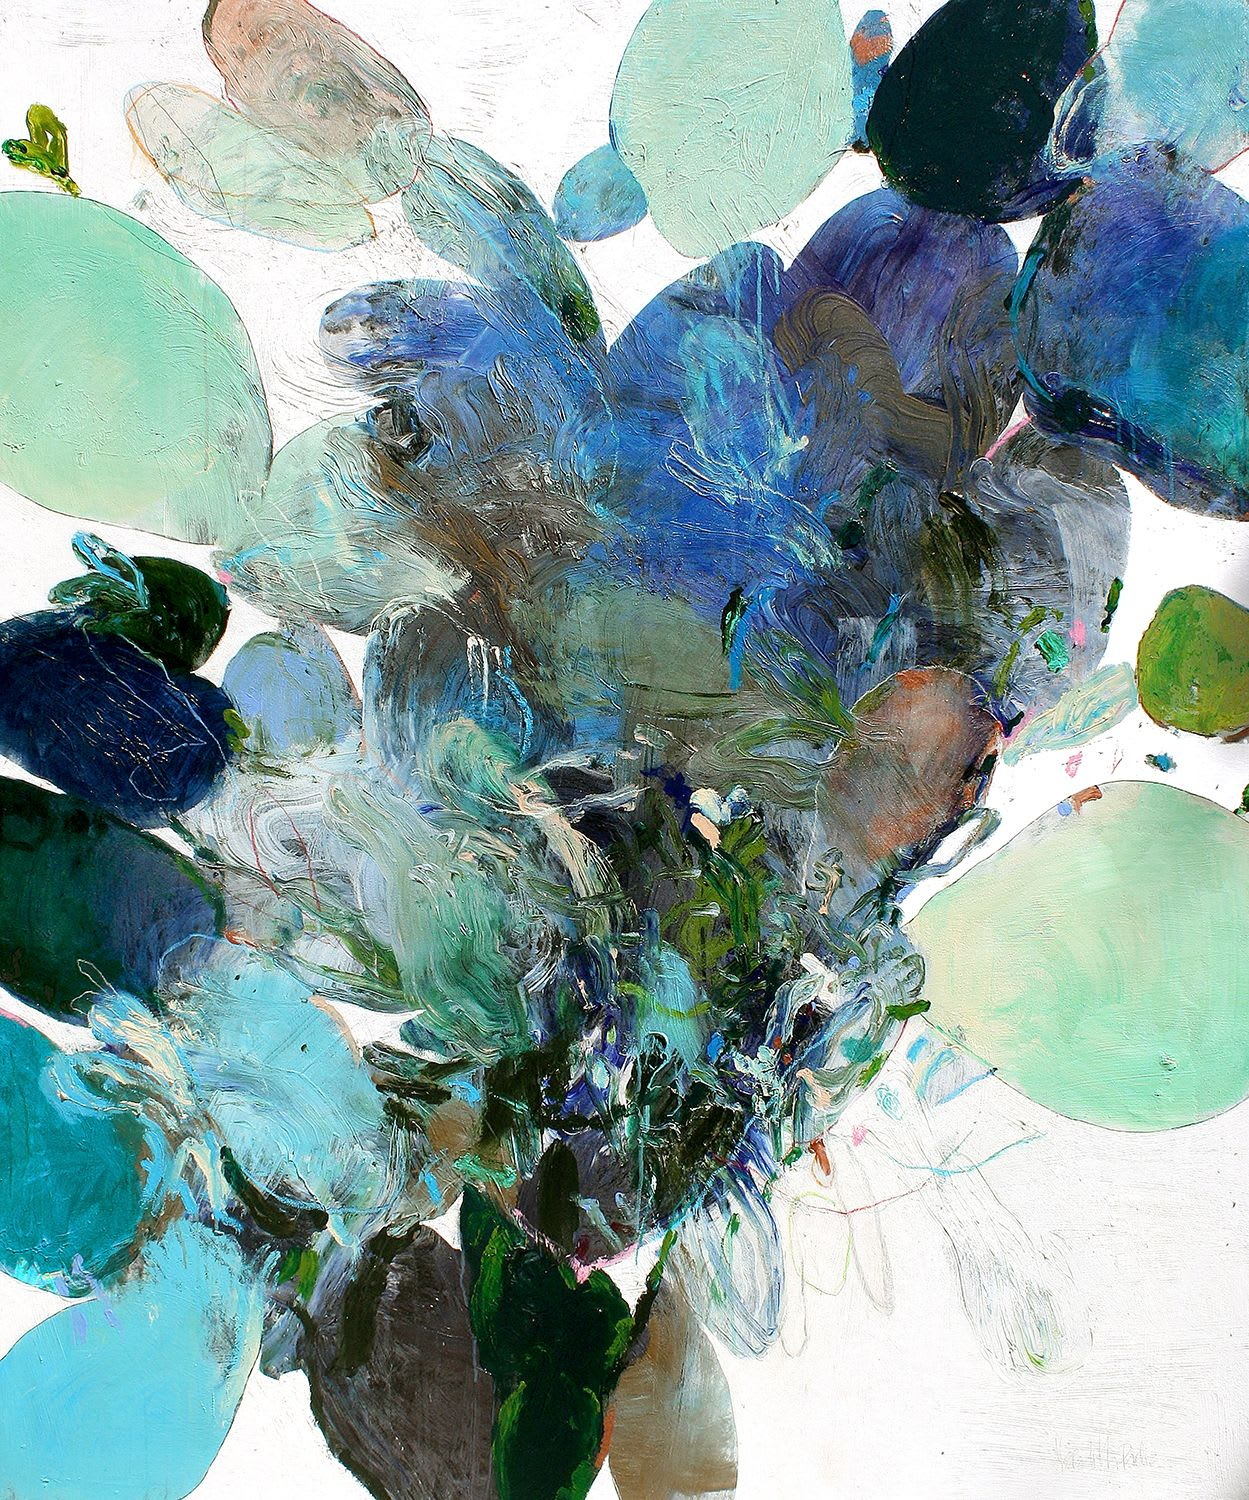 Abstract blues and greens painting